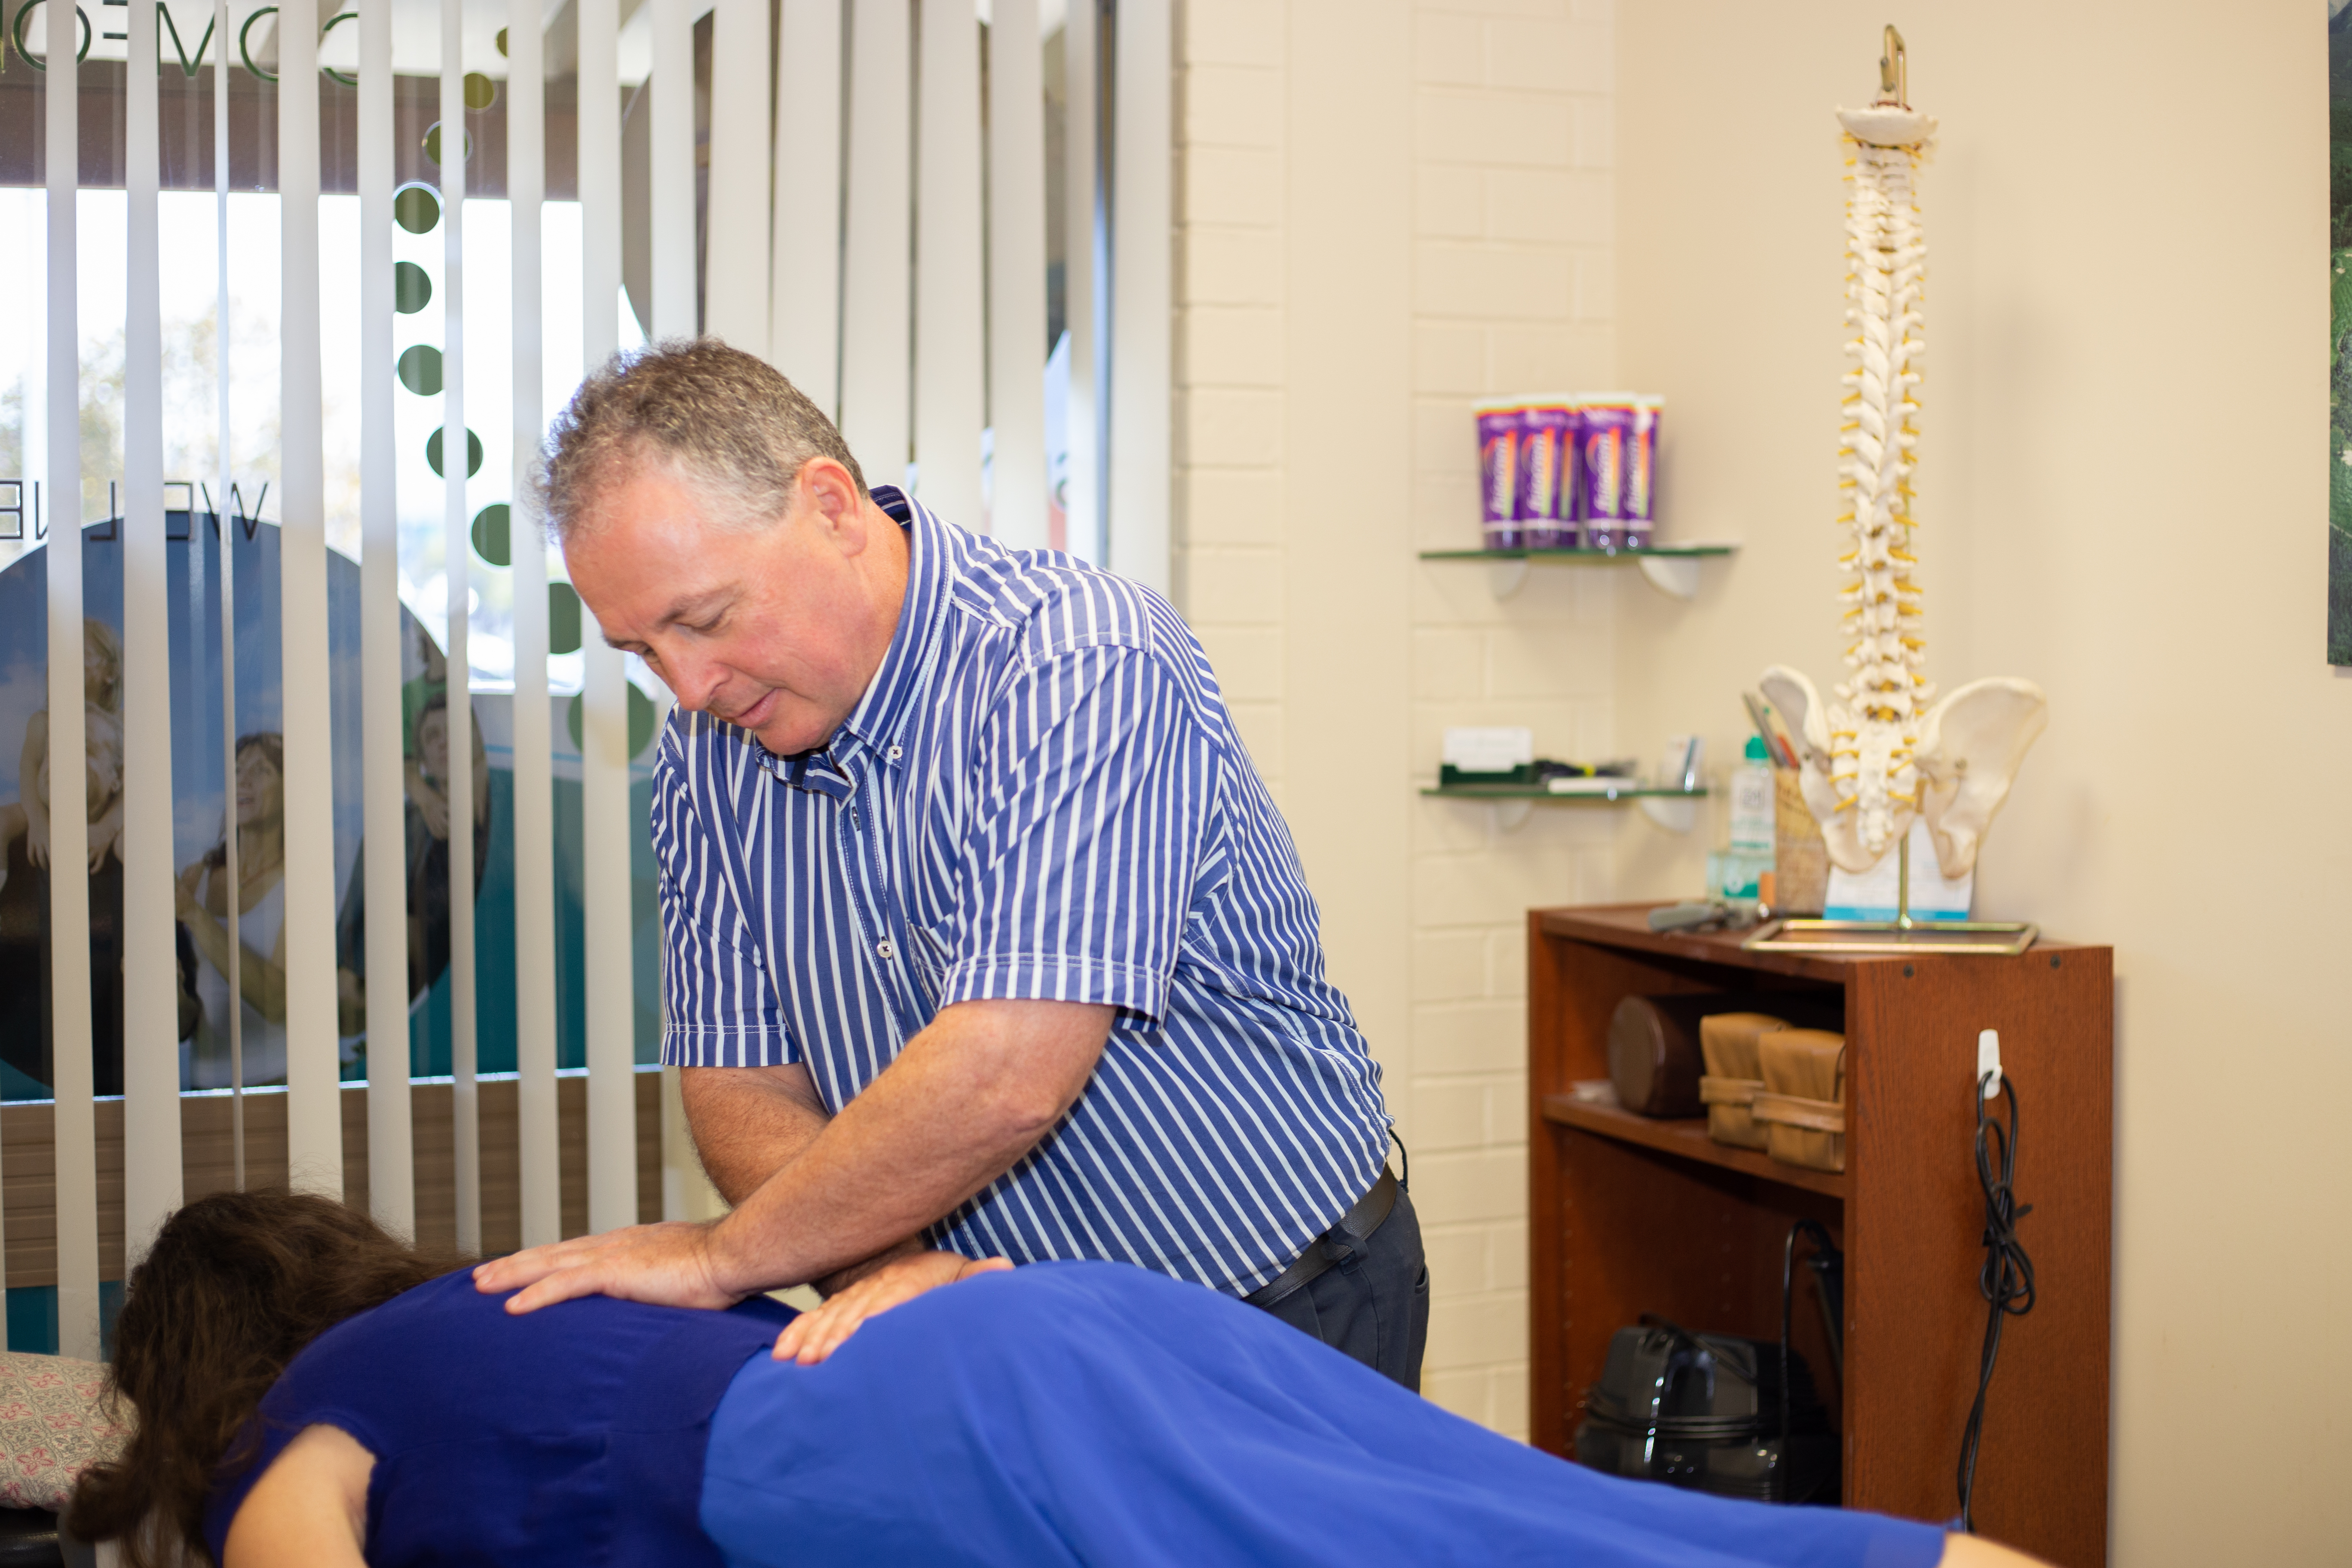 Chiropractic Manipulative Therapy